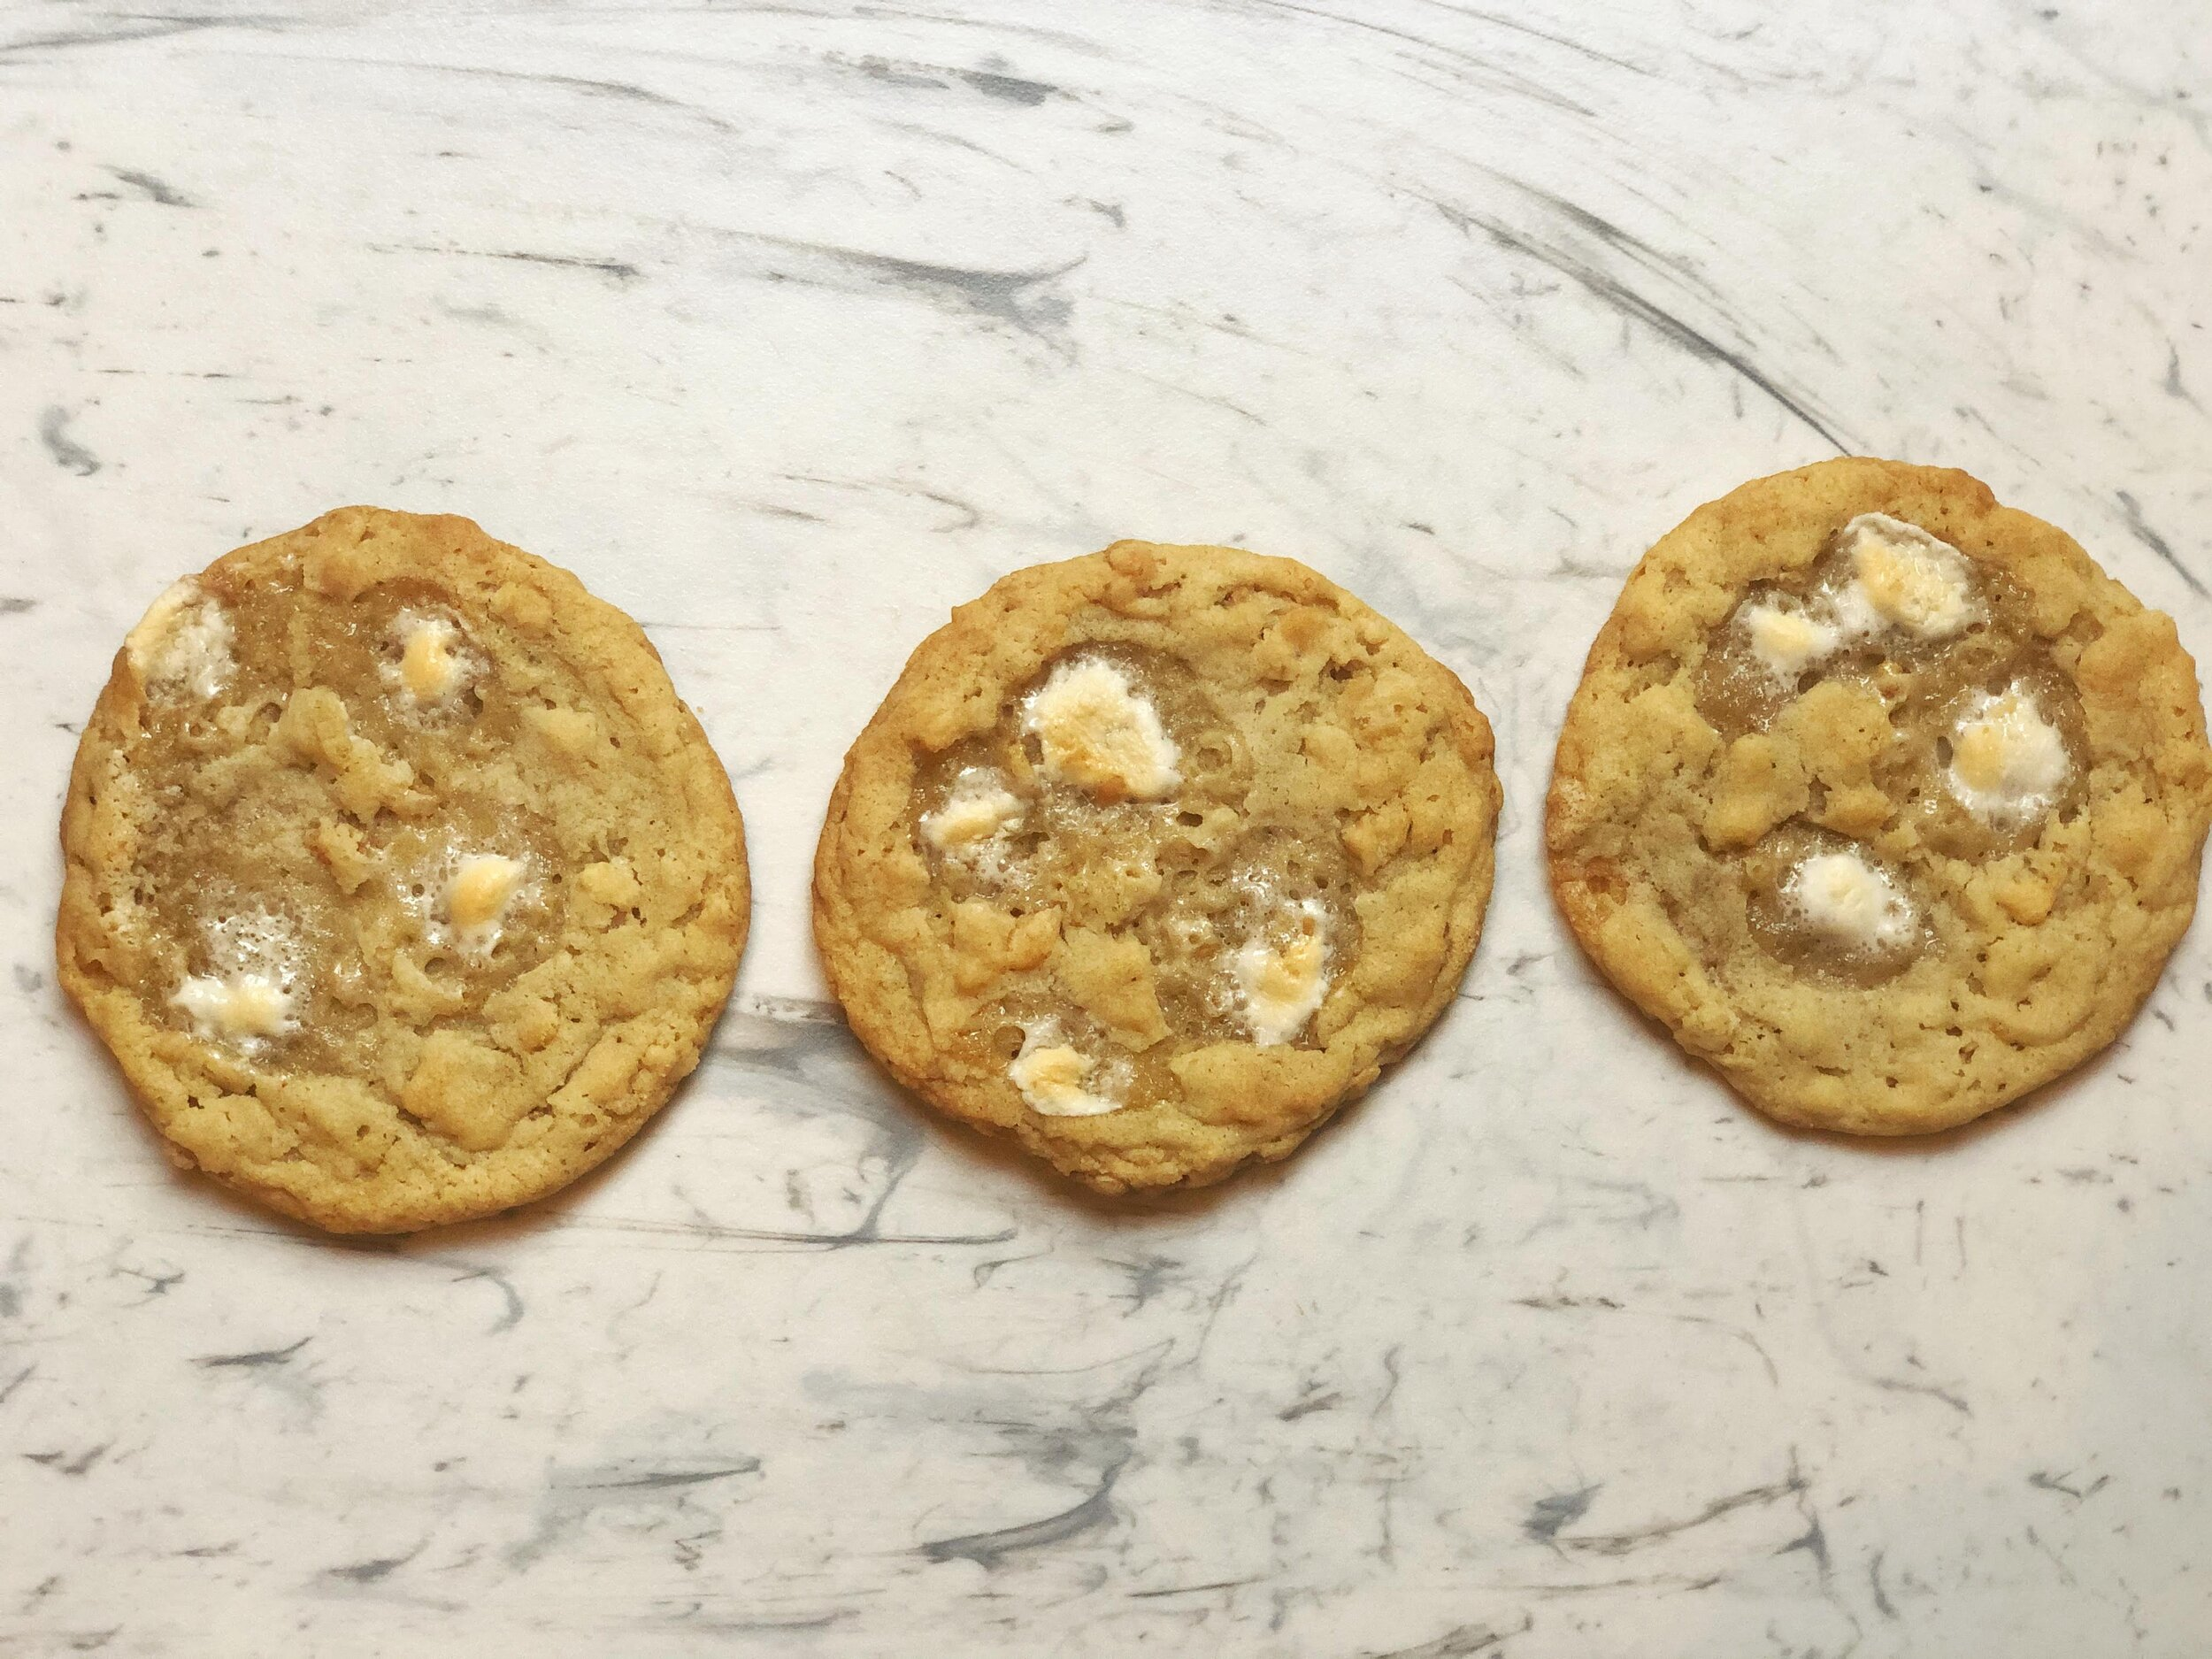 Rice Krispie Marshmallow Cookies | Salt and Sugar Bakery Catering and Delivery in Agoura Hills, CA